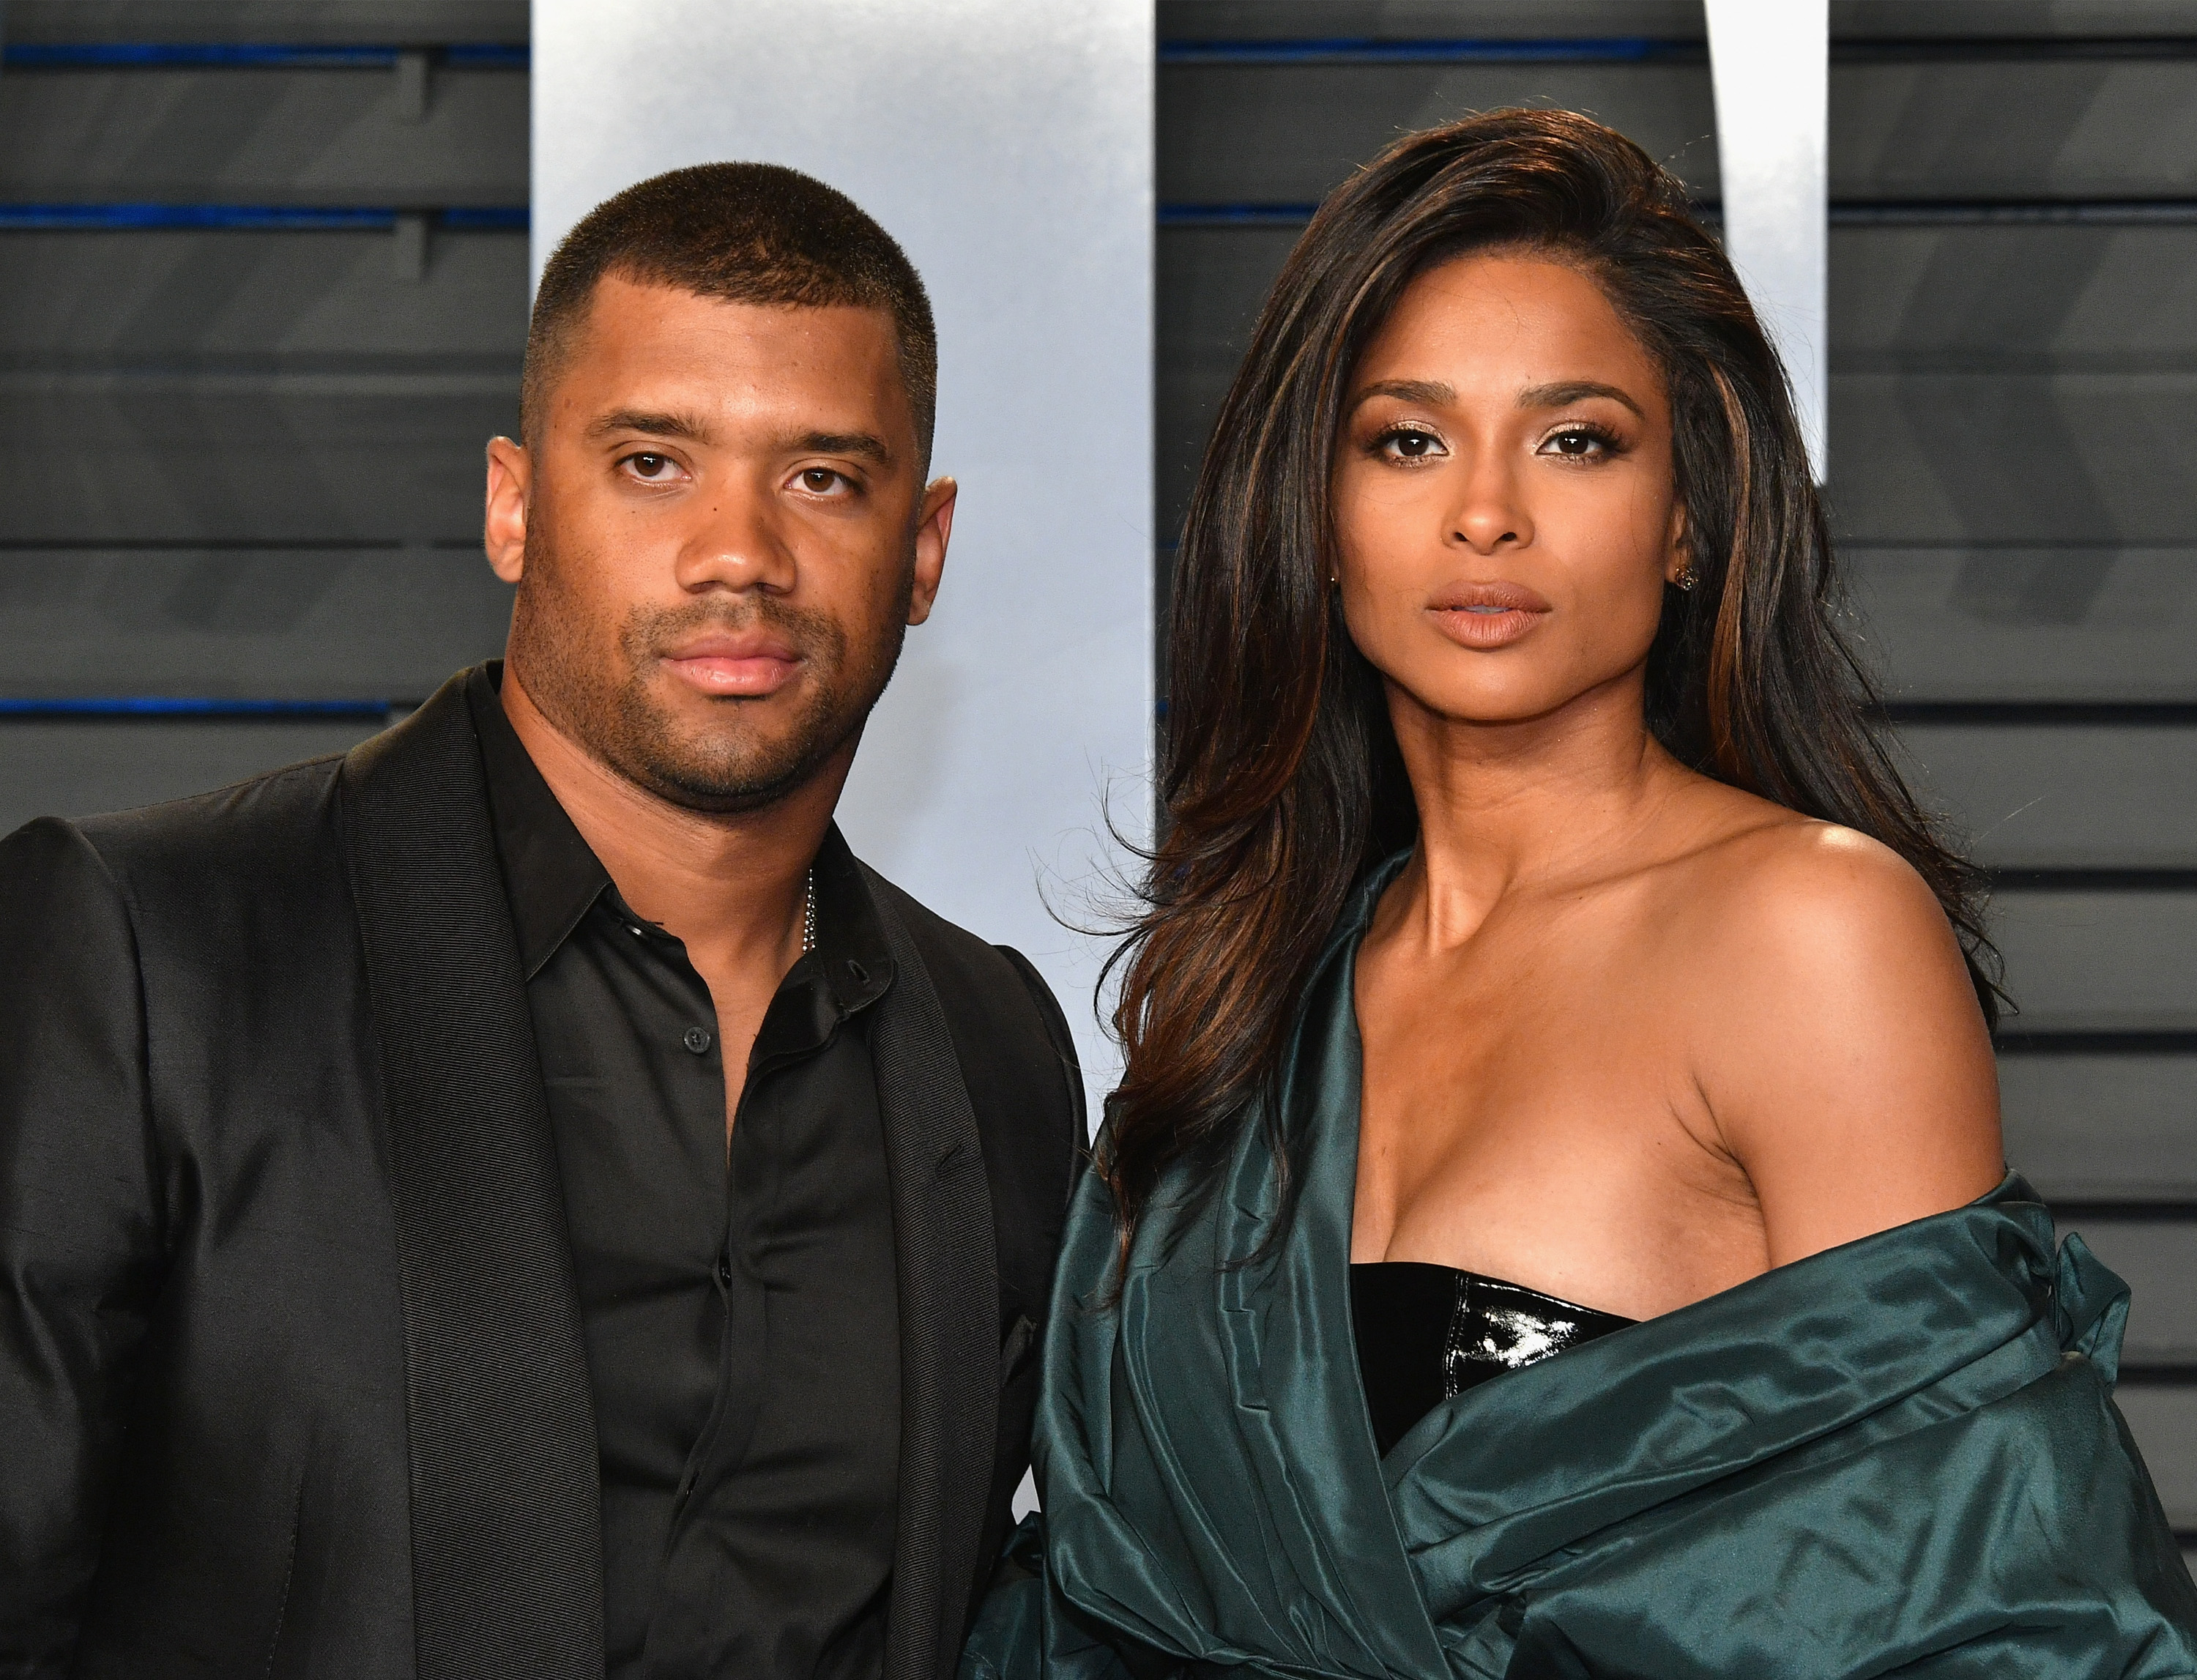 Seahawks Star Russell Wilson Gave His Wife, Ciara, Football Advice That She Never Forgets